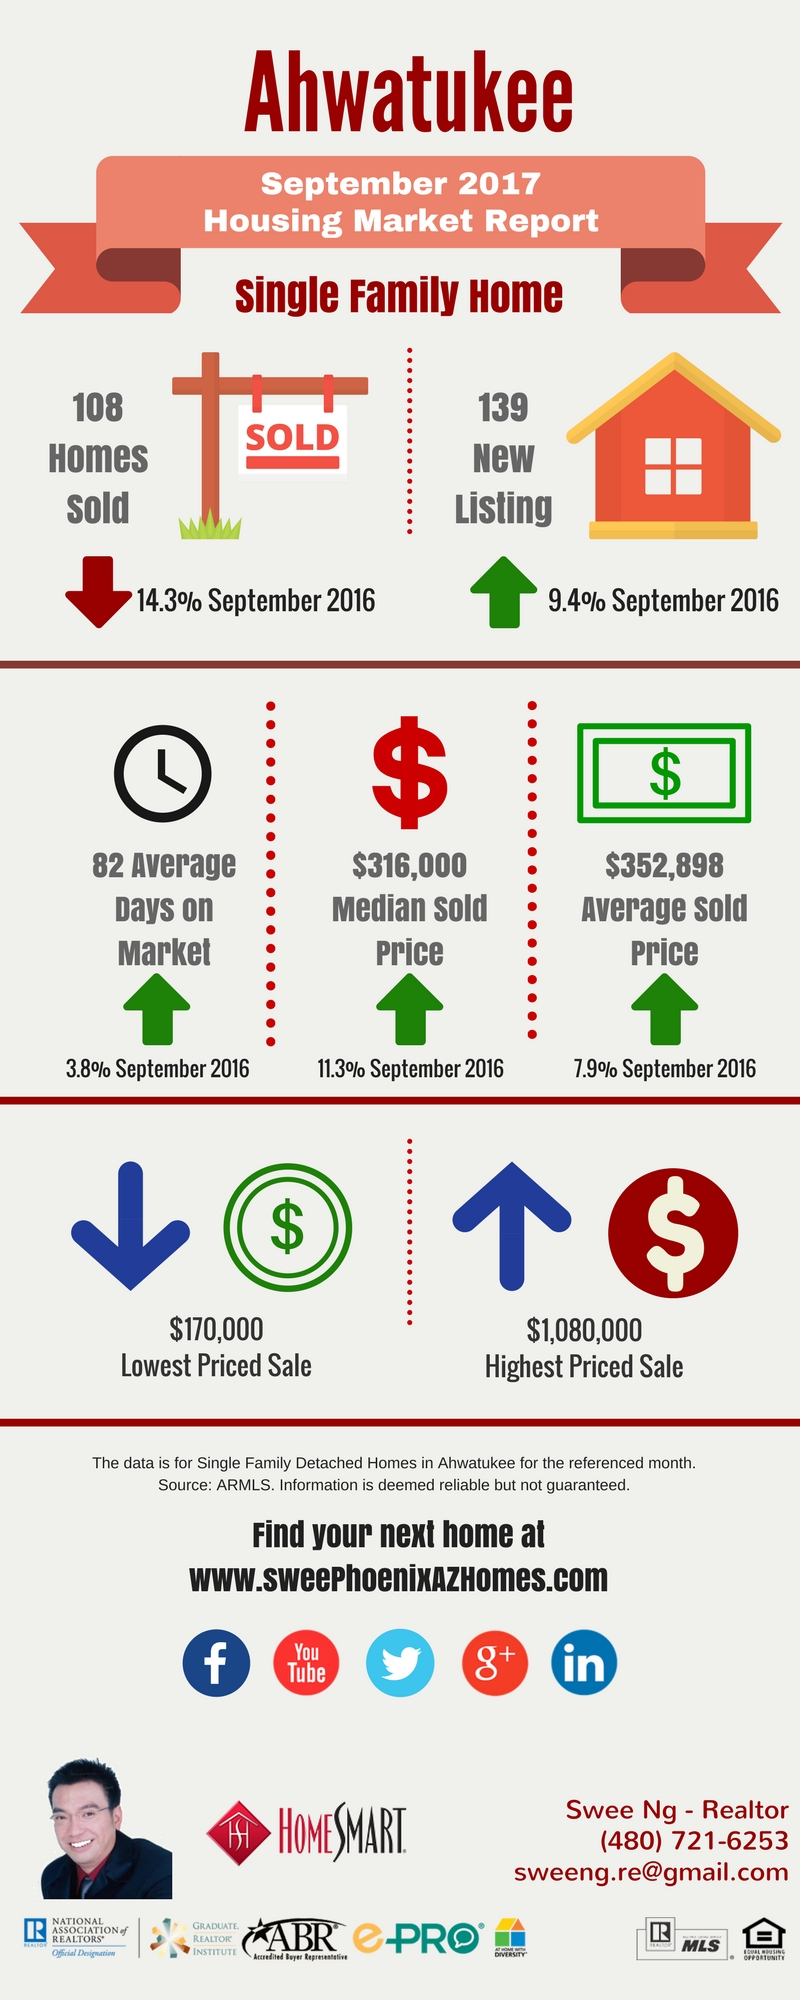 Ahwatukee Housing Market Trends Report September 2017, House Value, Real Estate and Statistic by Swee Ng